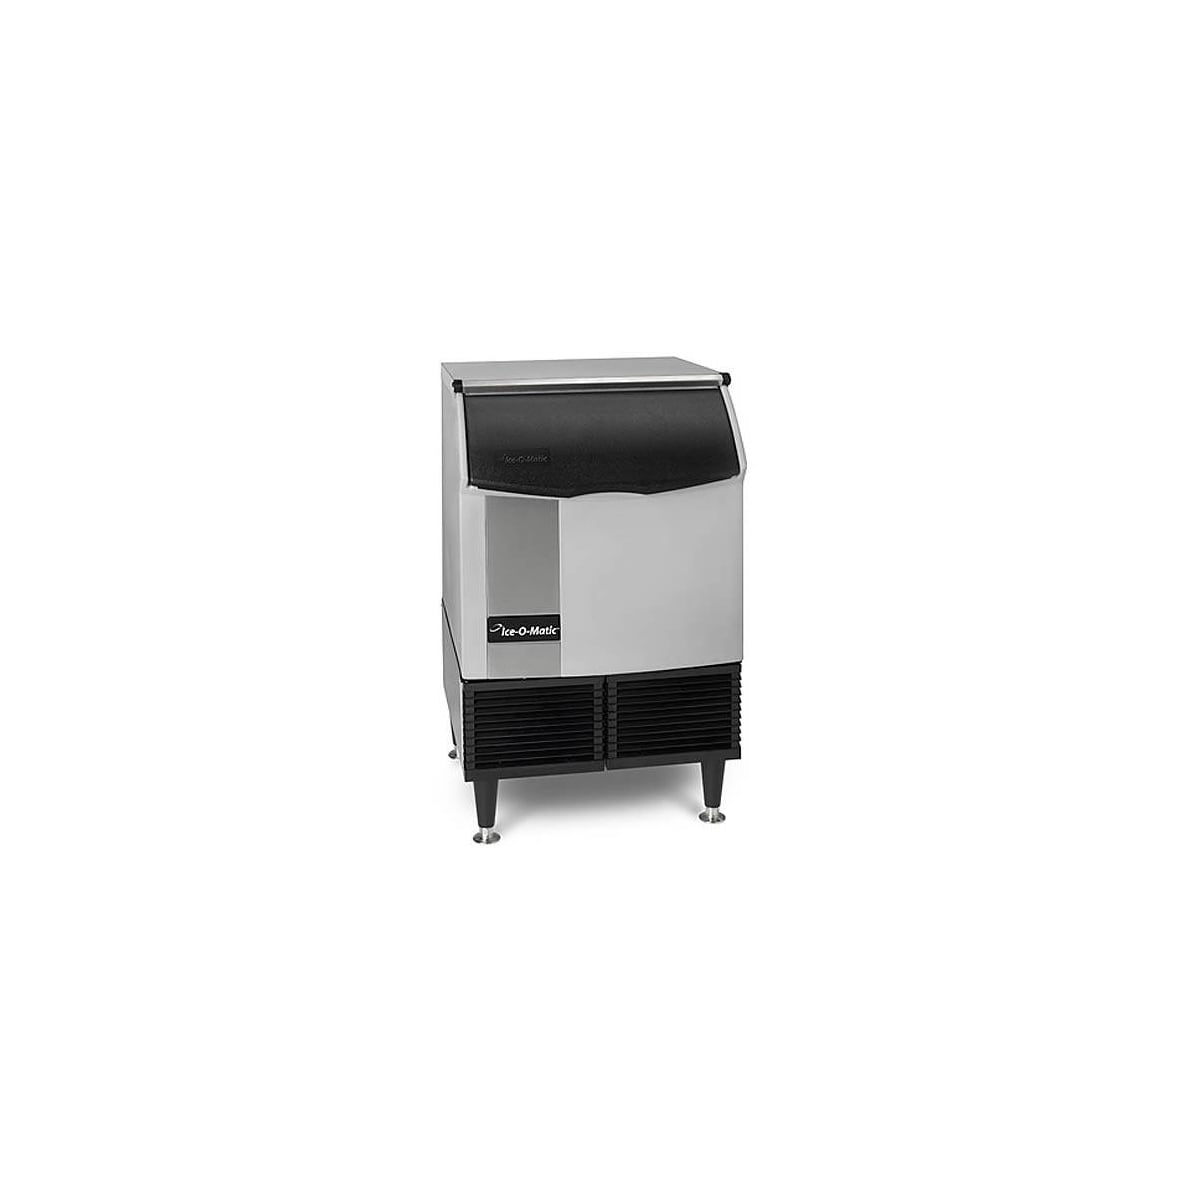 iceu220ha ice o matic air cooled commercial cube ice maker - Ice O Matic Ice Machine